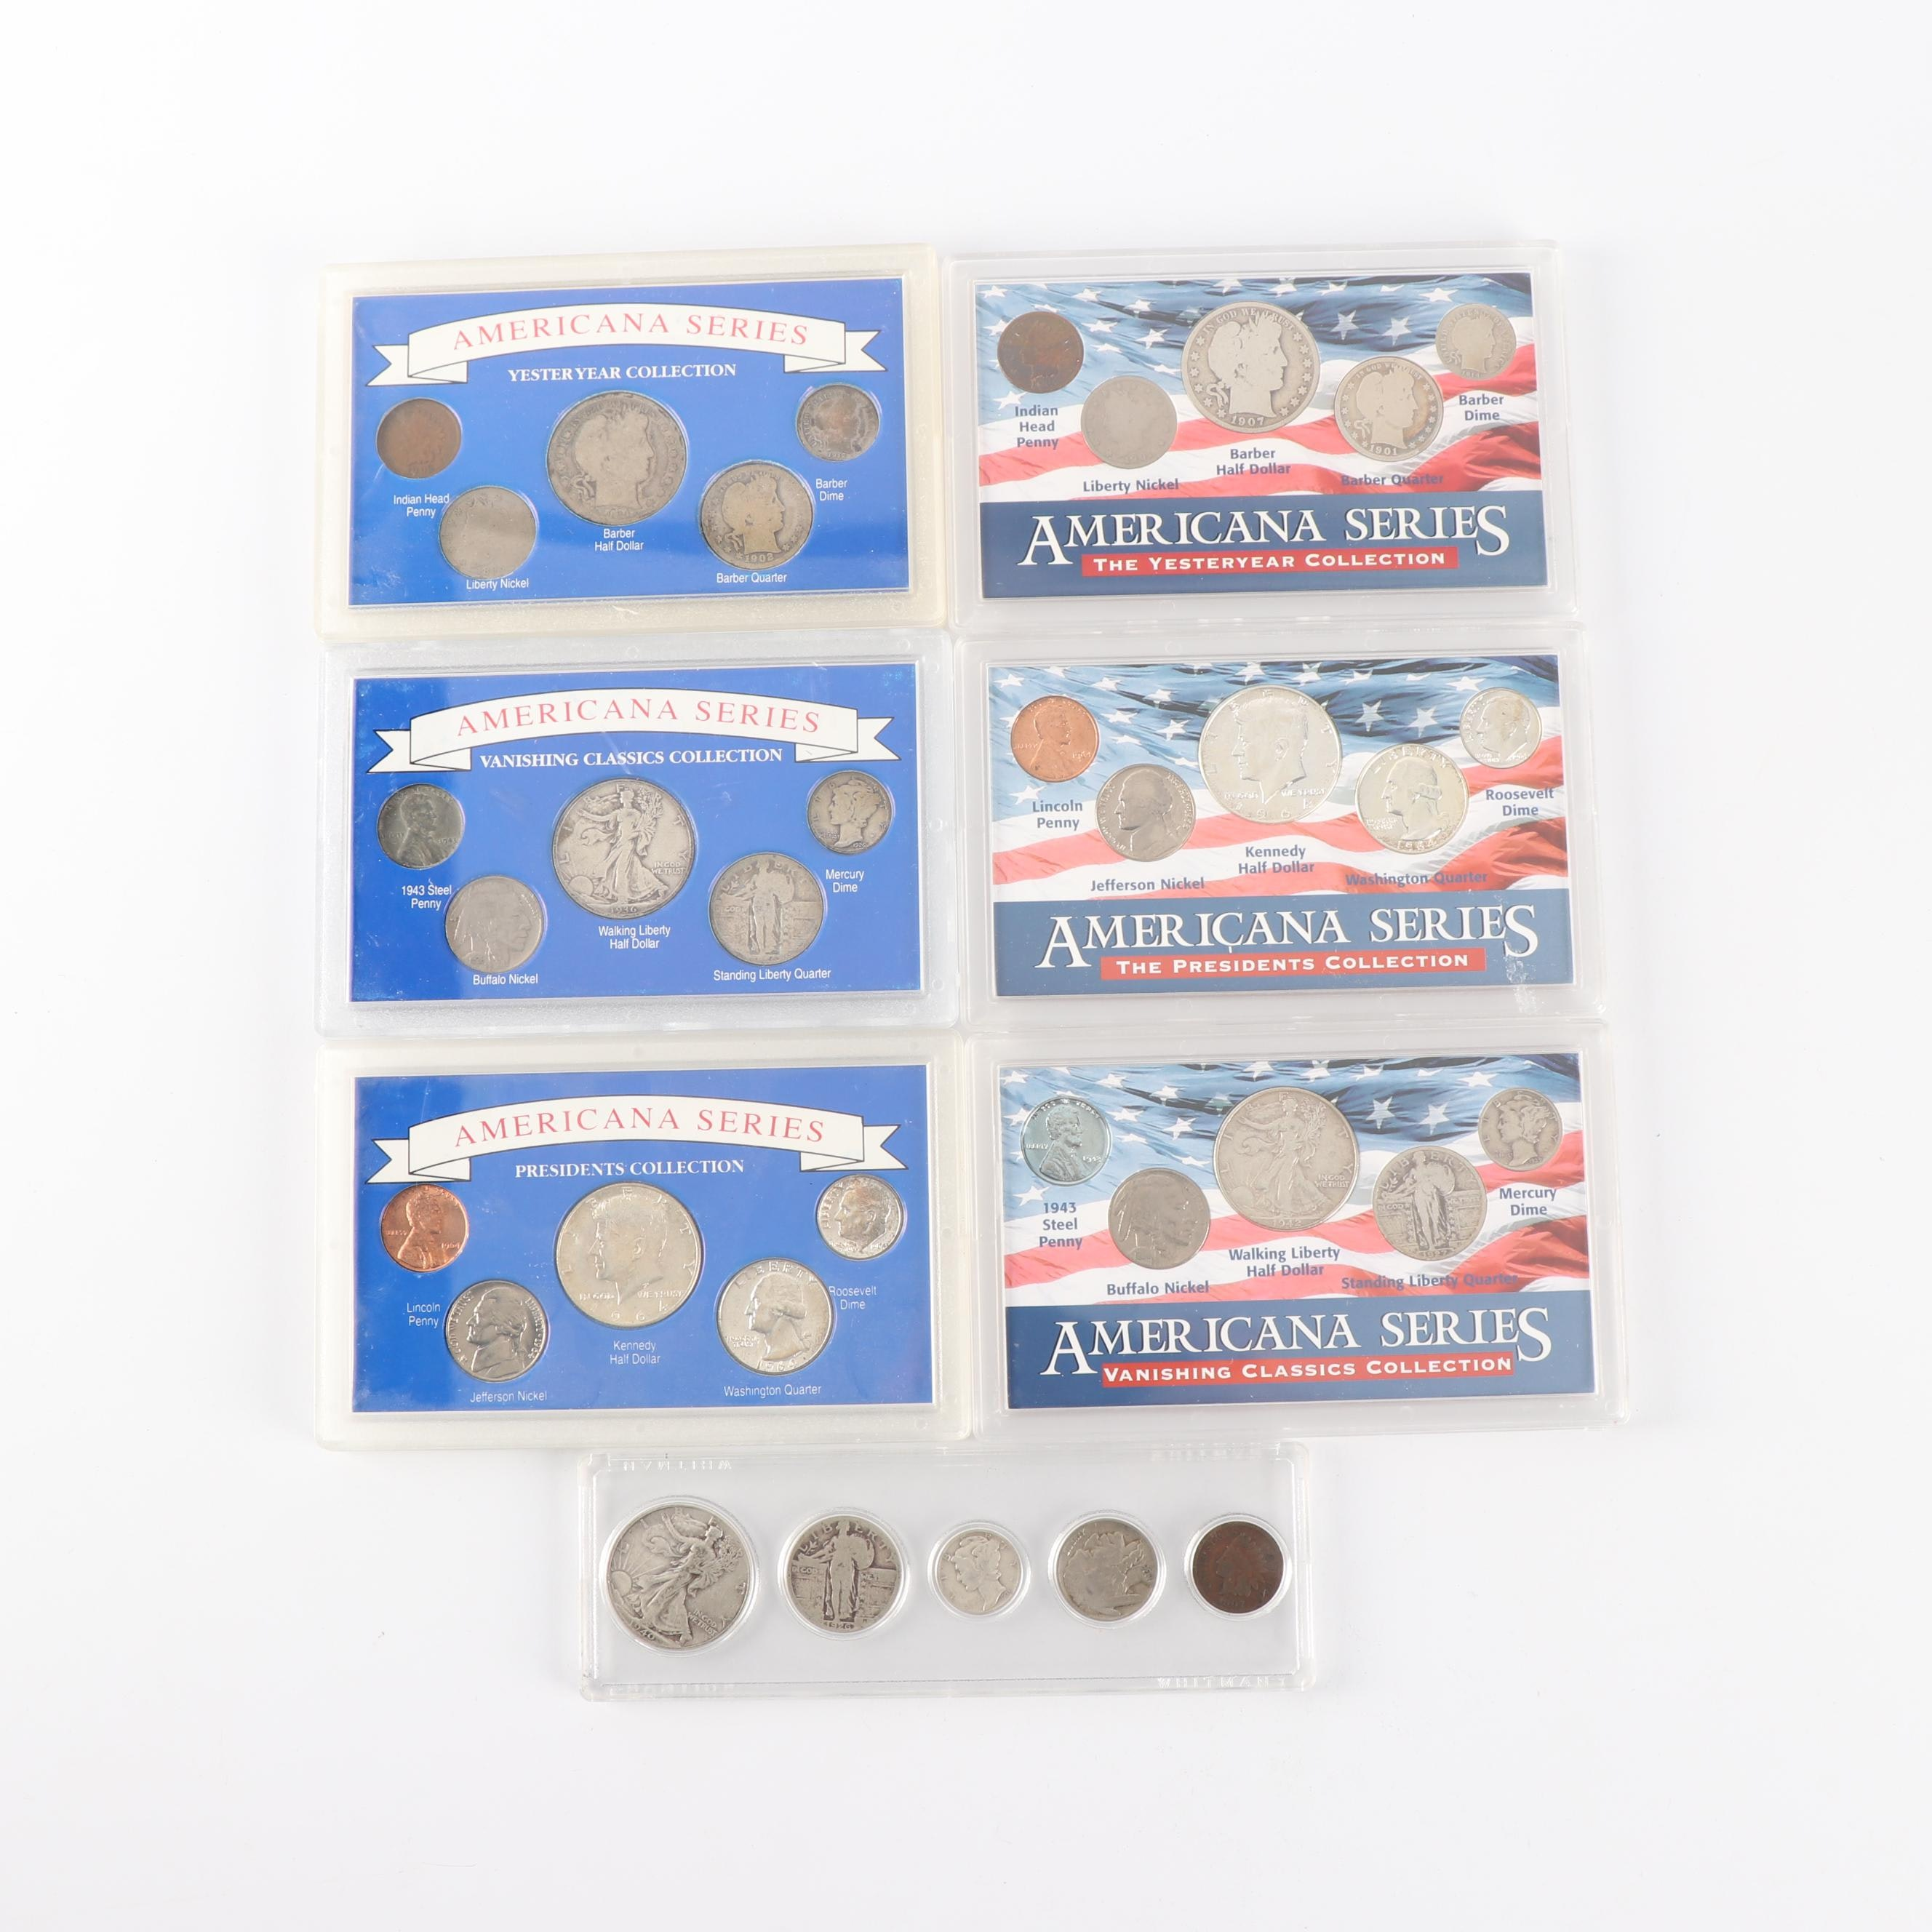 """Americana Series """"Vanishing Classics Collection"""" Coin Sets"""